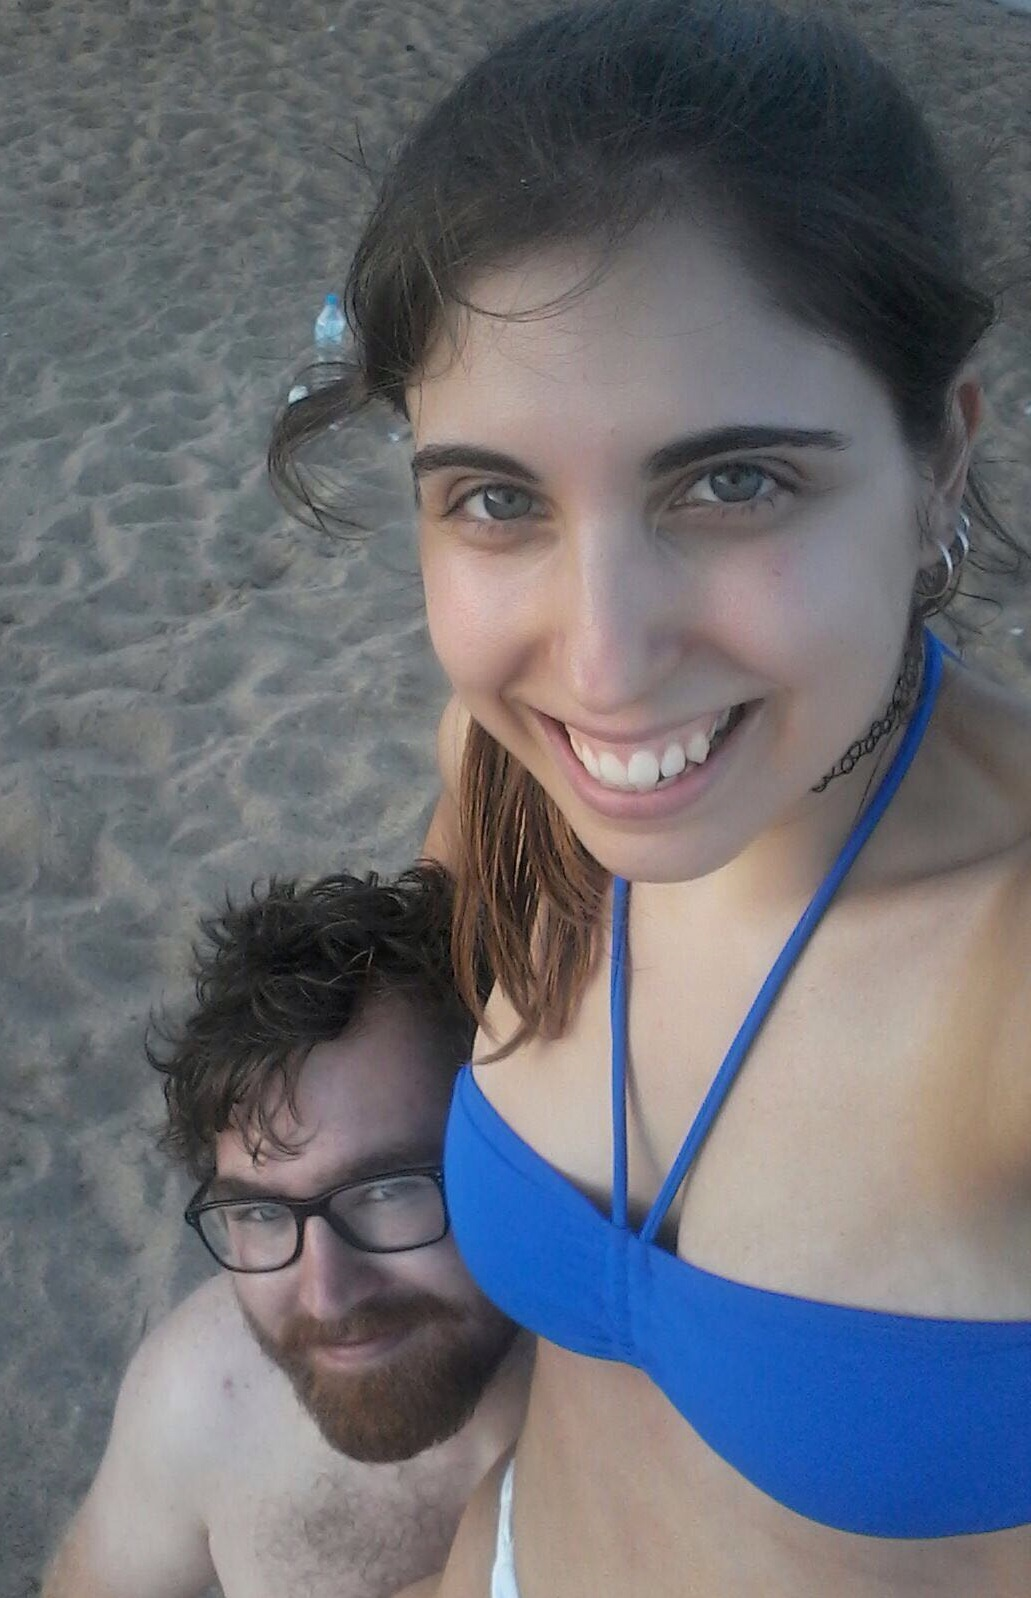 Aleksander and his girlfriend Marta at the beach.